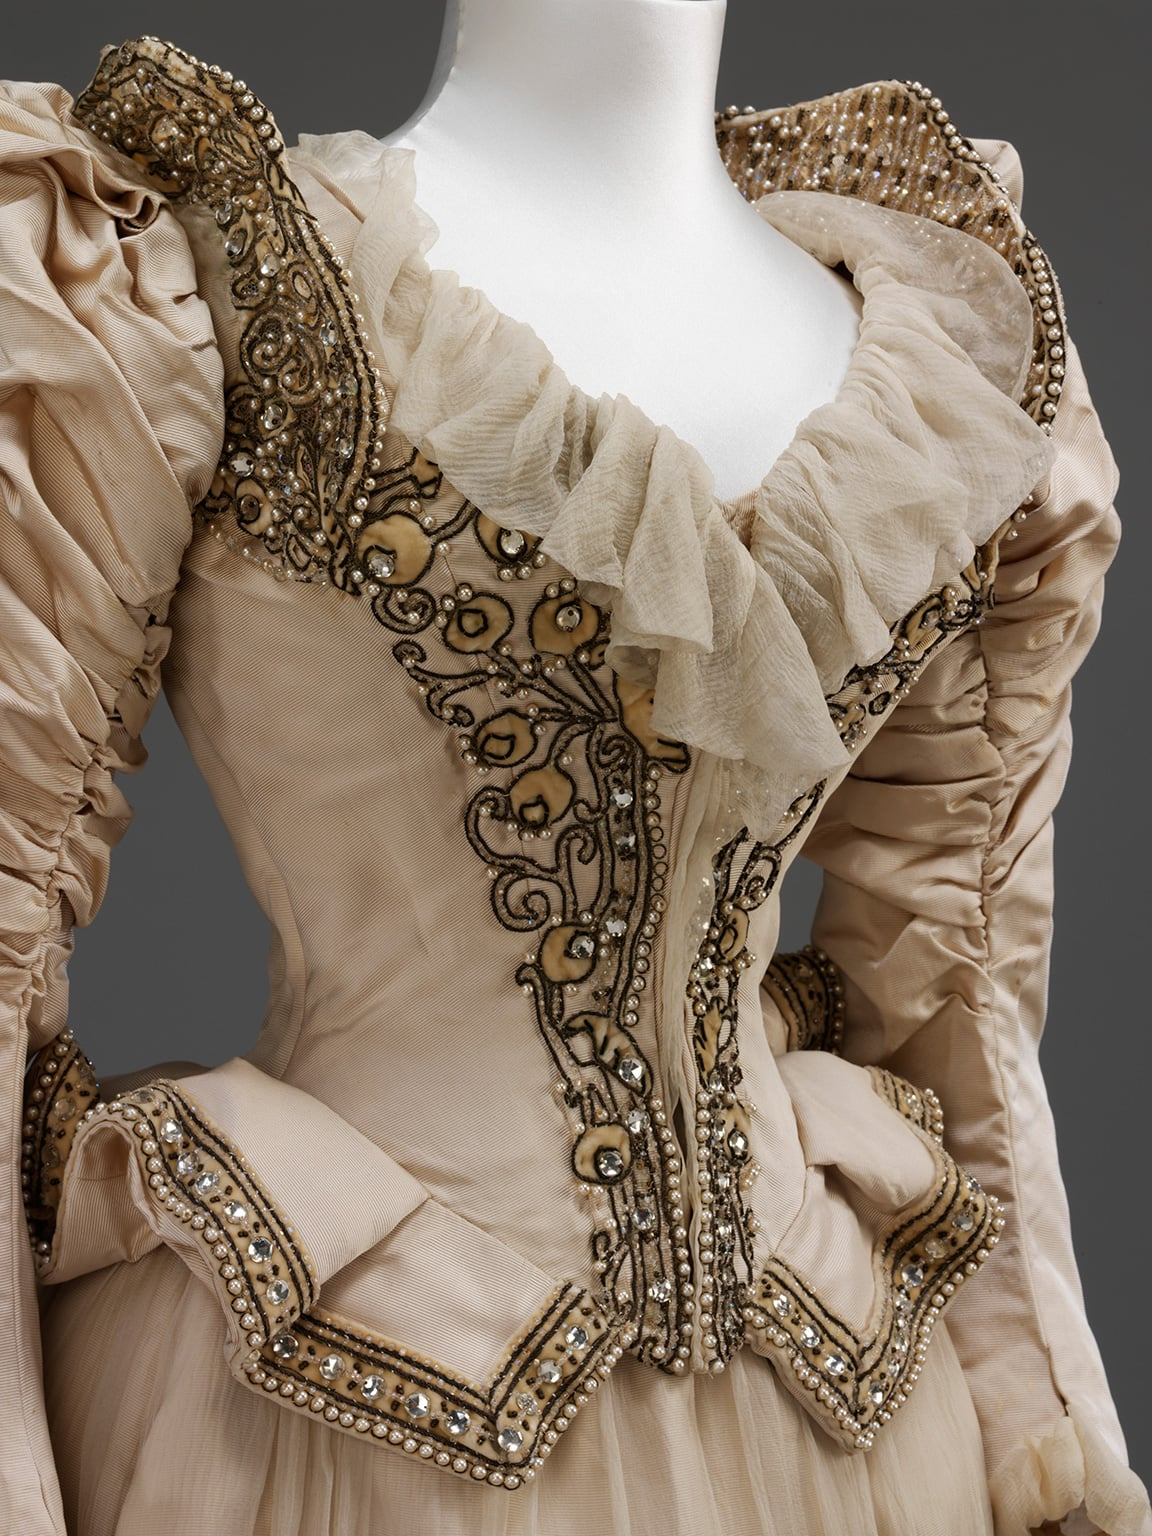 Embroidered corded silk wedding dress made after a Paquin, Lalanne et Cie Paris model by Stern Brothers, New York. Worn by Cara Leland Huttleston Rogers for her marriage in New York to Bradford Ferris Duff Given by Lord Fairhaven, 1890